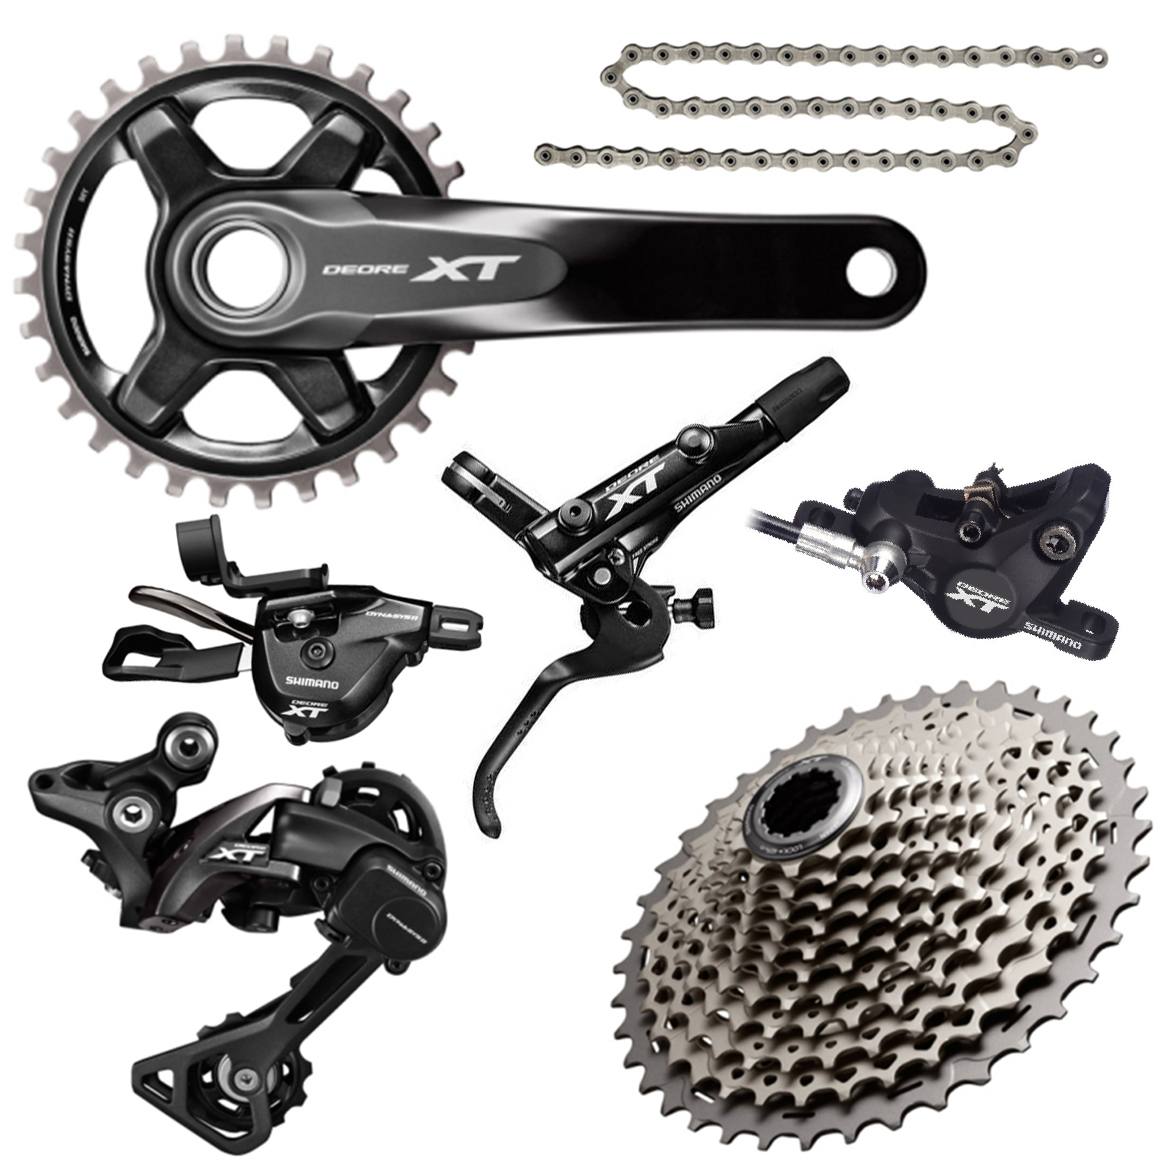 2c3813b069b Shimano XT M8000 1x11 Disc Brake Groupset | Merlin Cycles